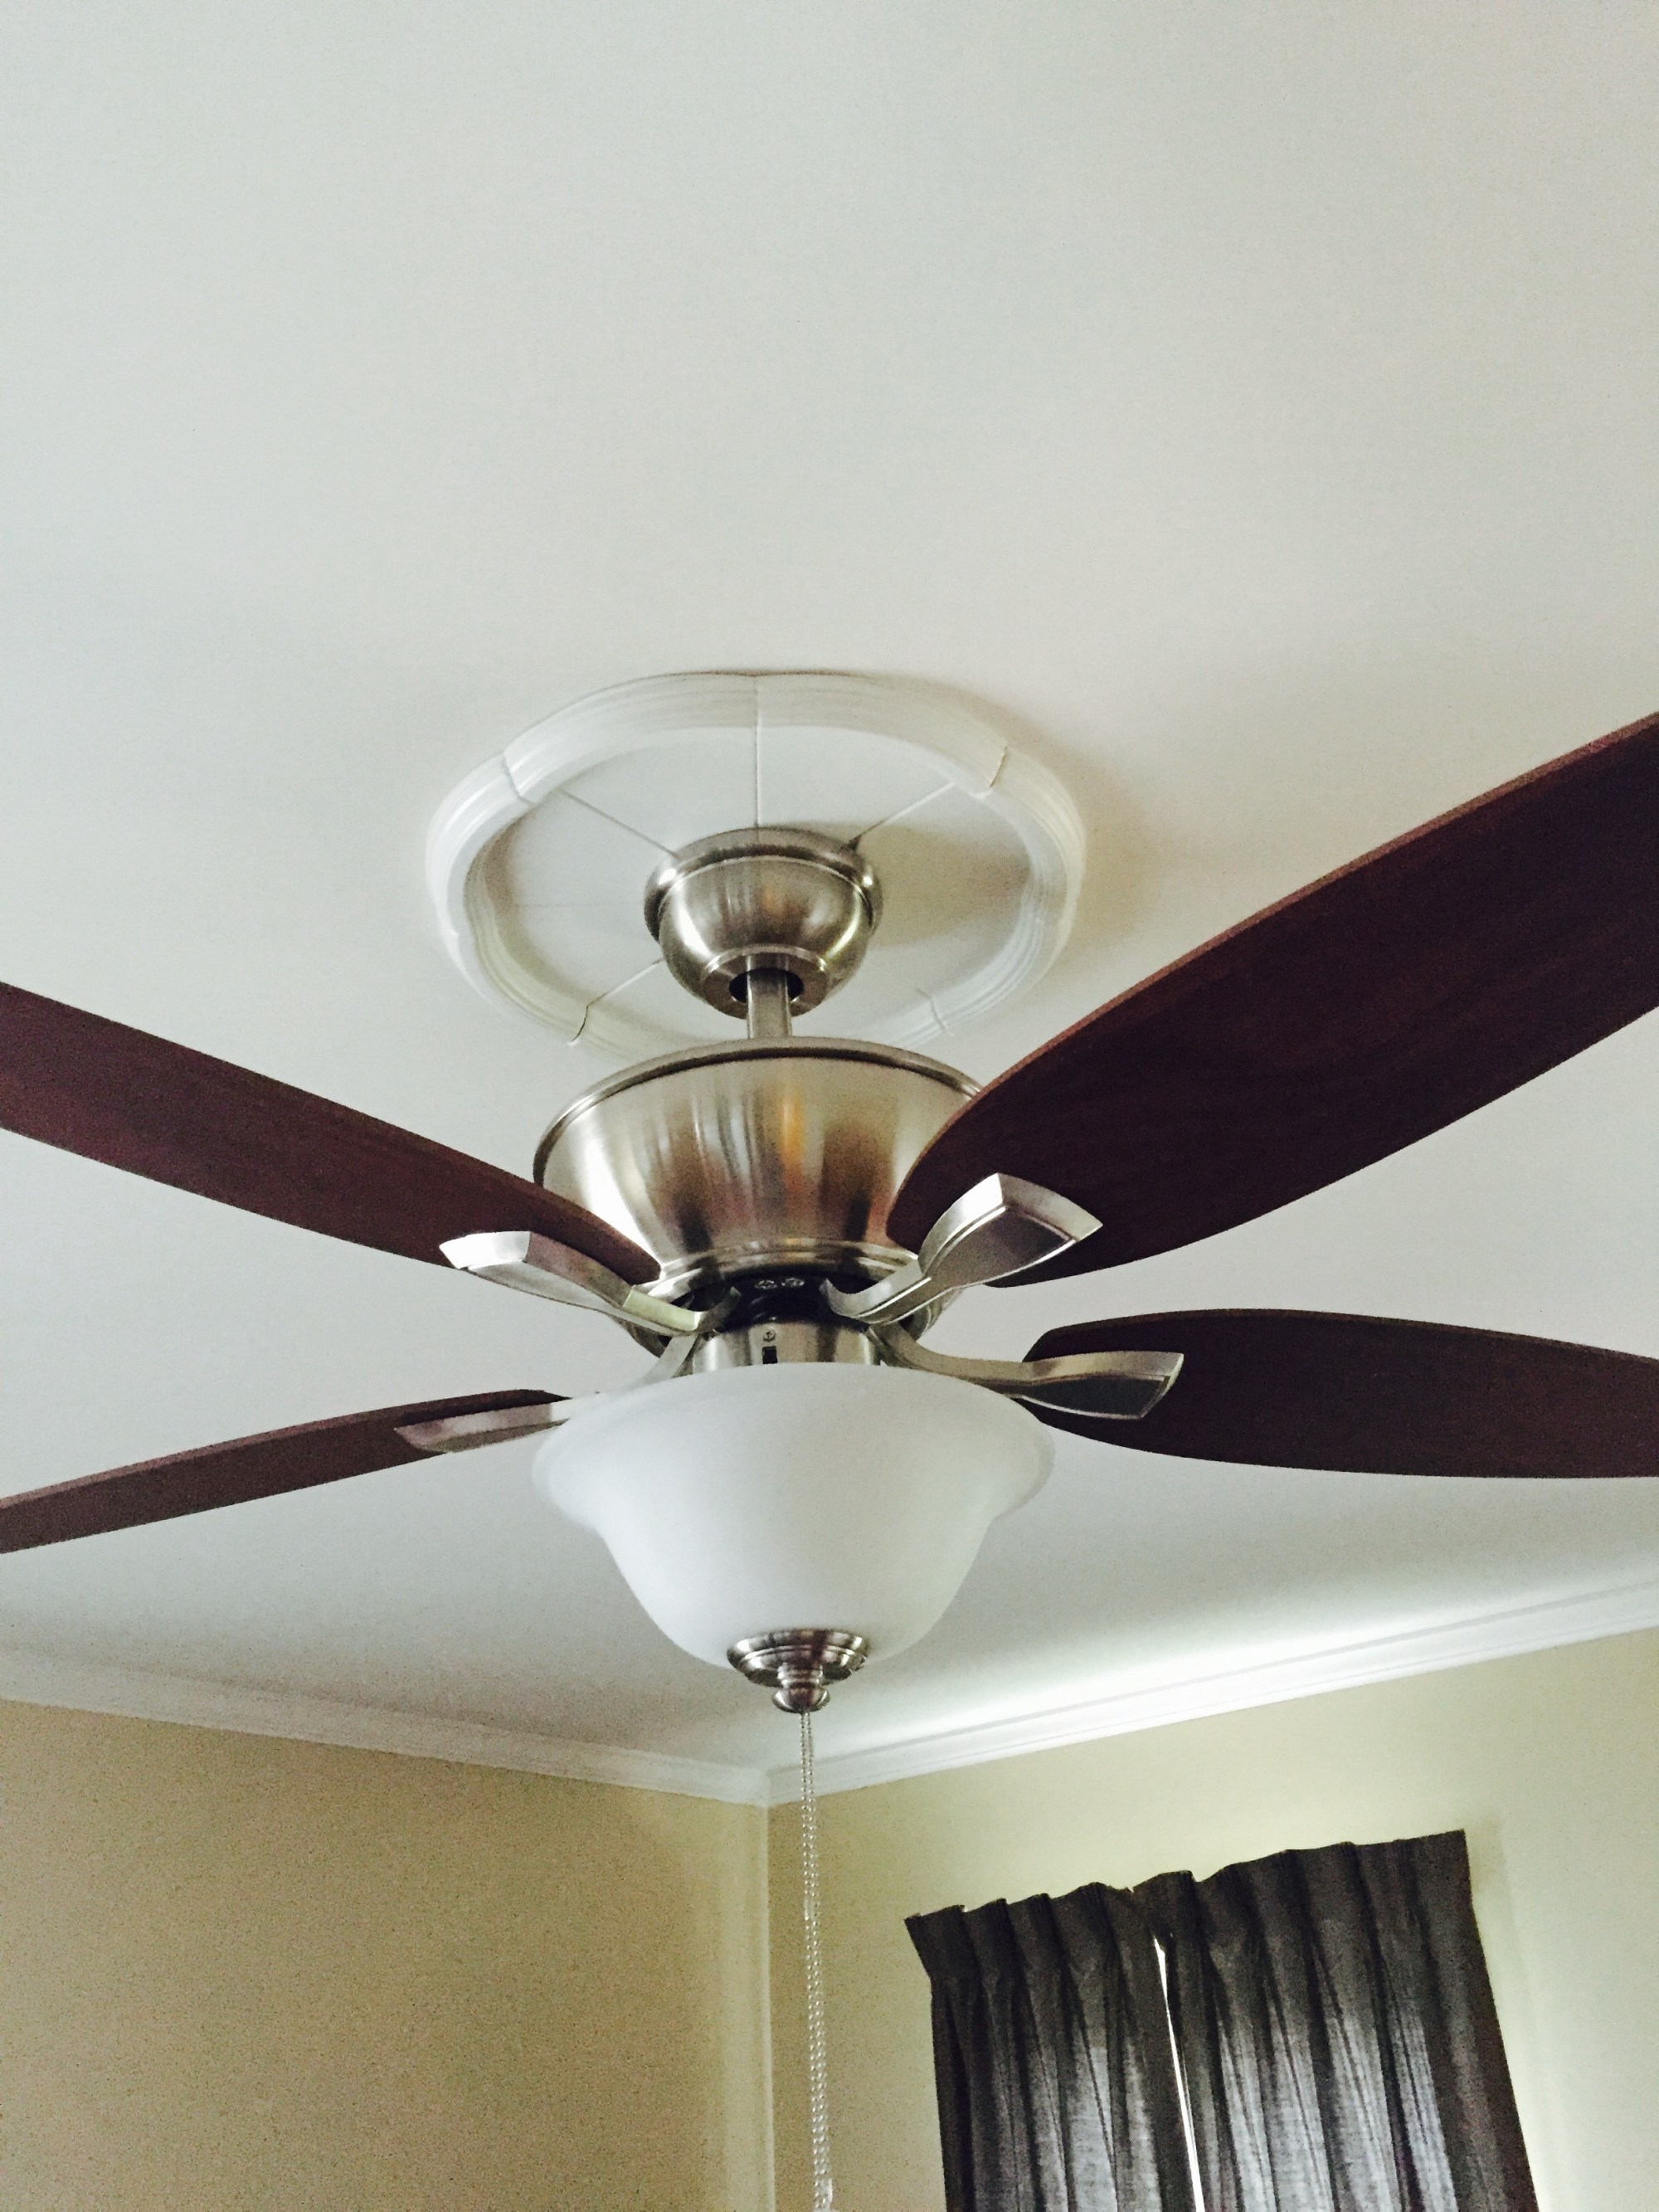 hight resolution of ceiling fan installation